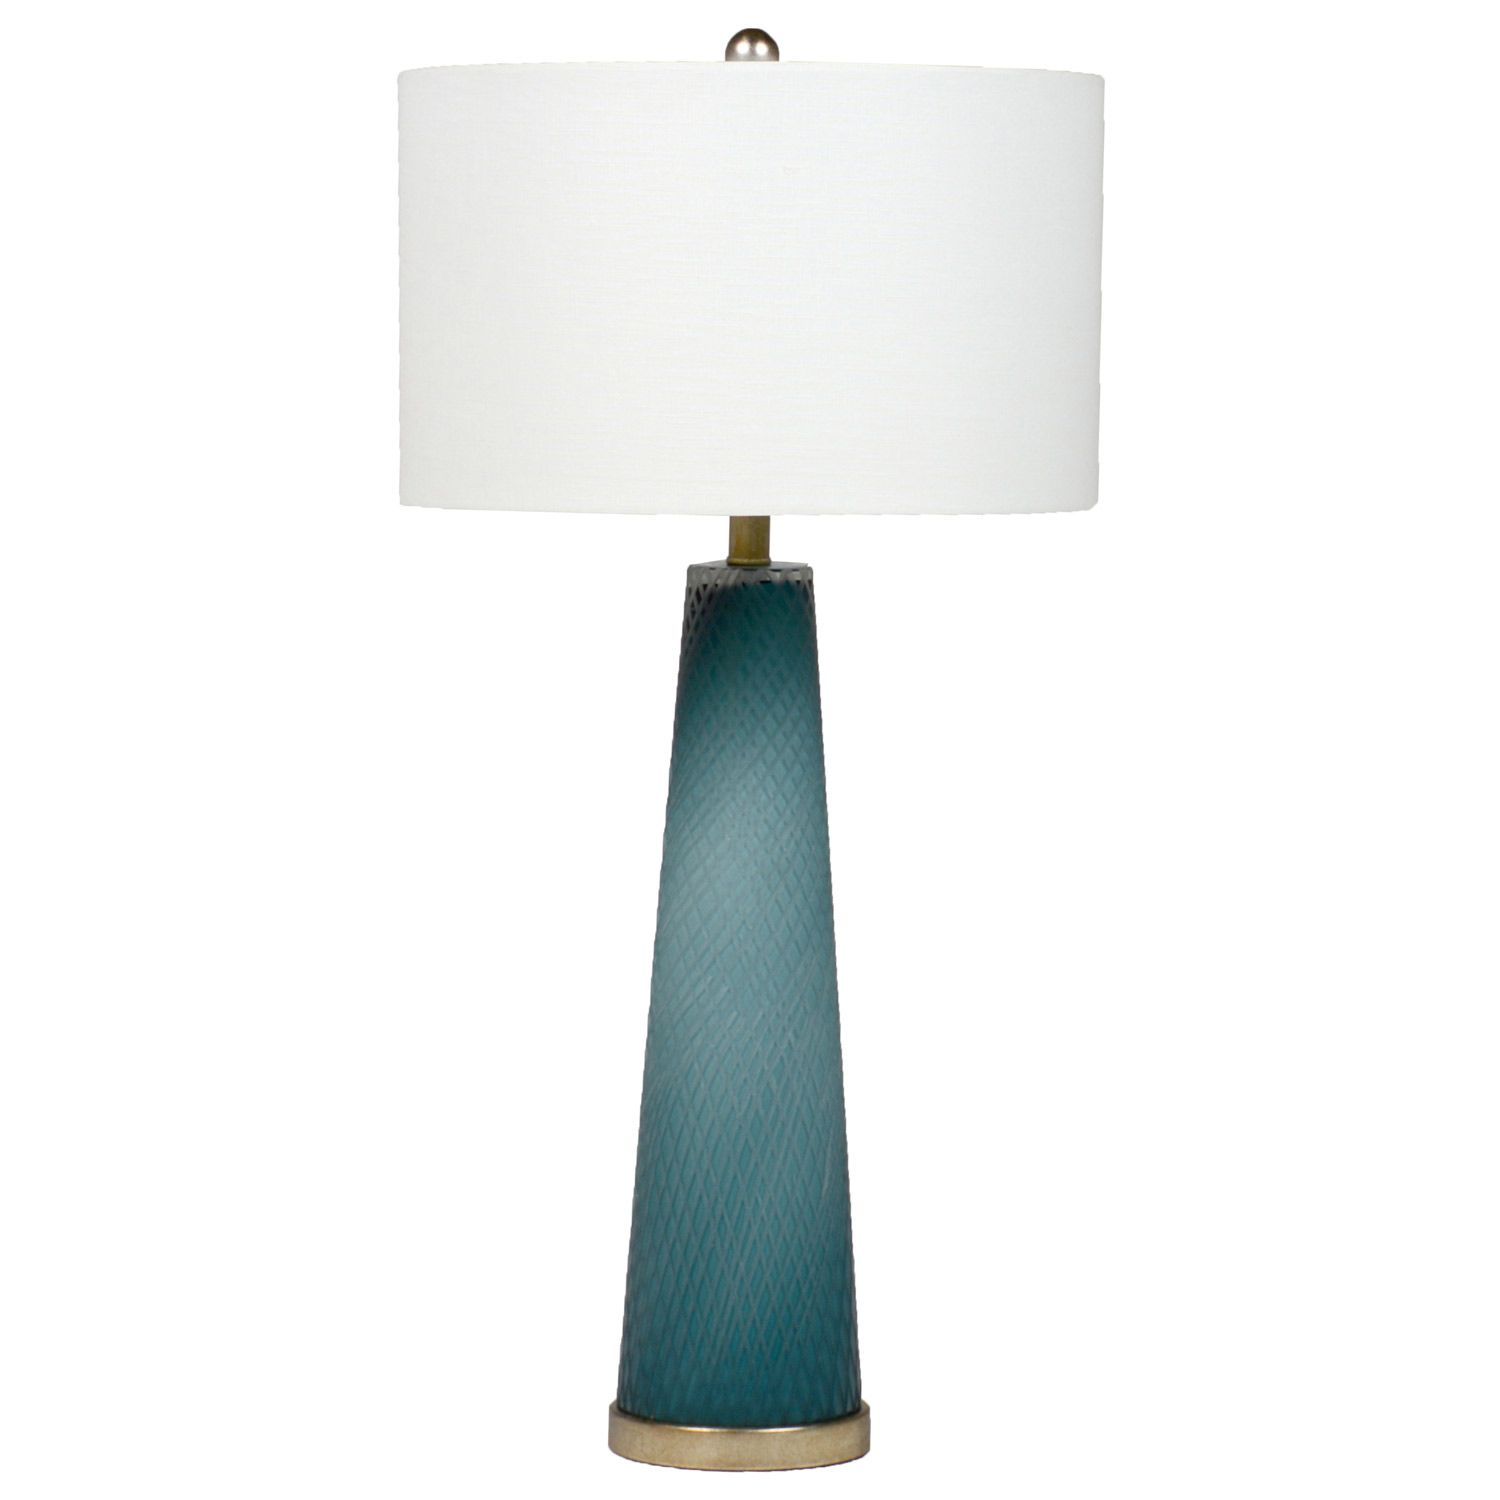 Marvelous Minimalist In Design, The Gabby Lighting Brianna Lamp Complements A  Tabletop With Bold Color. On A Tapered Conical Glass Base In Varying Shades  Of Blue, ...